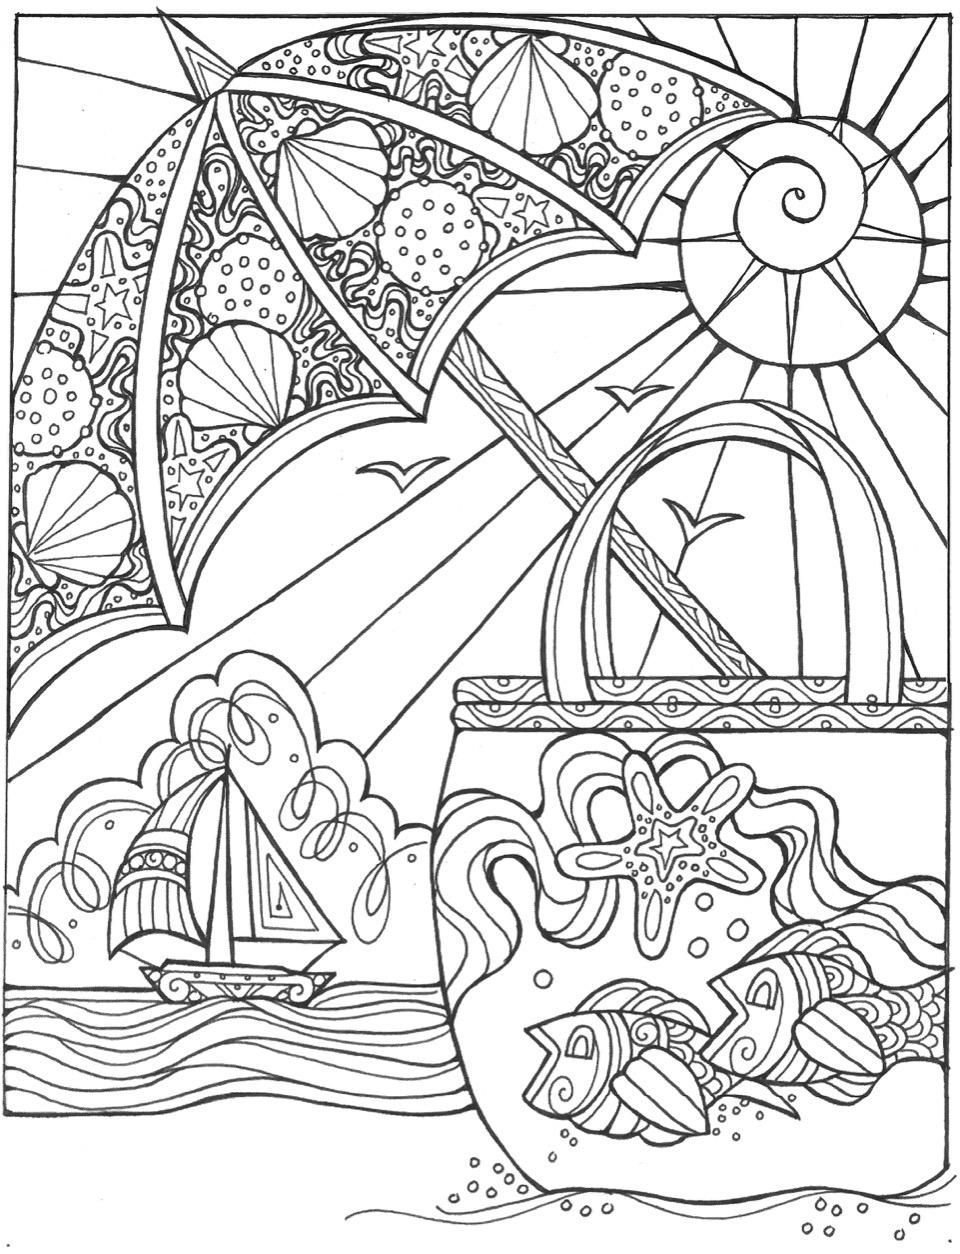 Summer Escape Beach Umbrella Coloring Page  Summer coloring pages